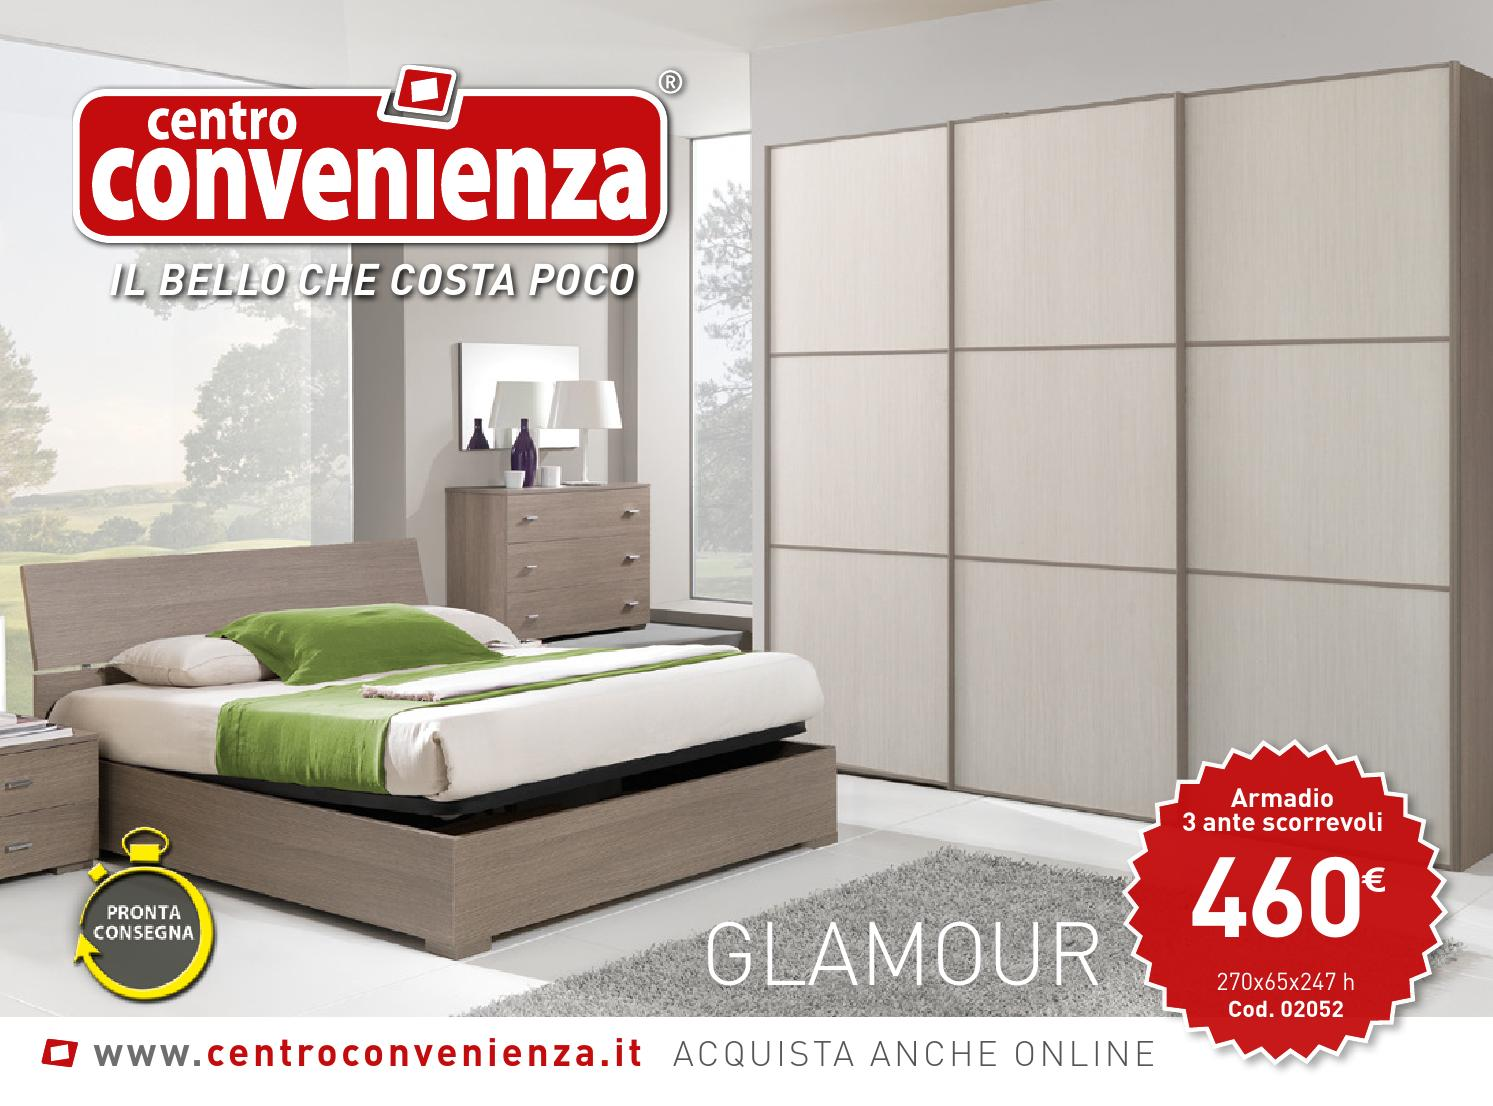 Centroconvenienza by fabrizio volante issuu for Divani centro convenienza